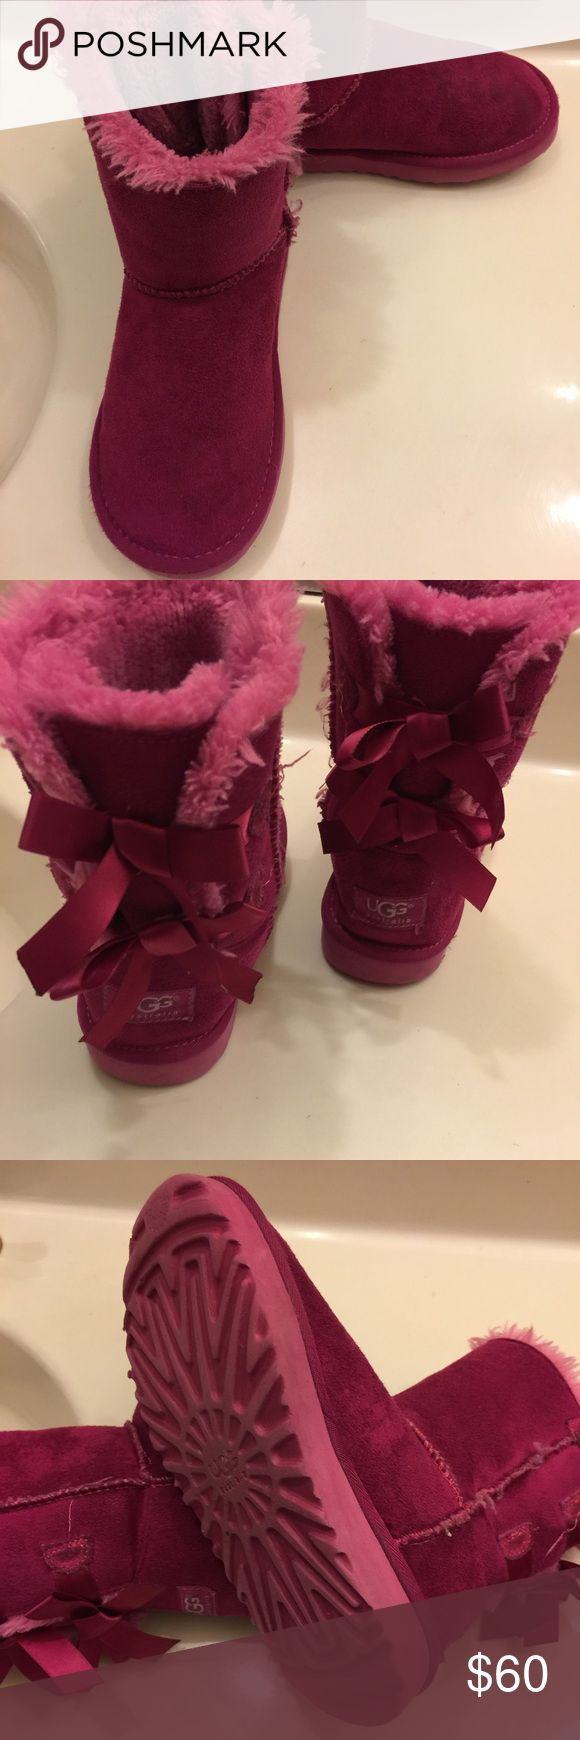 UGG Kids Bailey Bow UGG Kids Bailey Bow in excellent preowned condition. Please take a look at picture before making a purchase.  Size:1 UGG Australia Shoes Boots